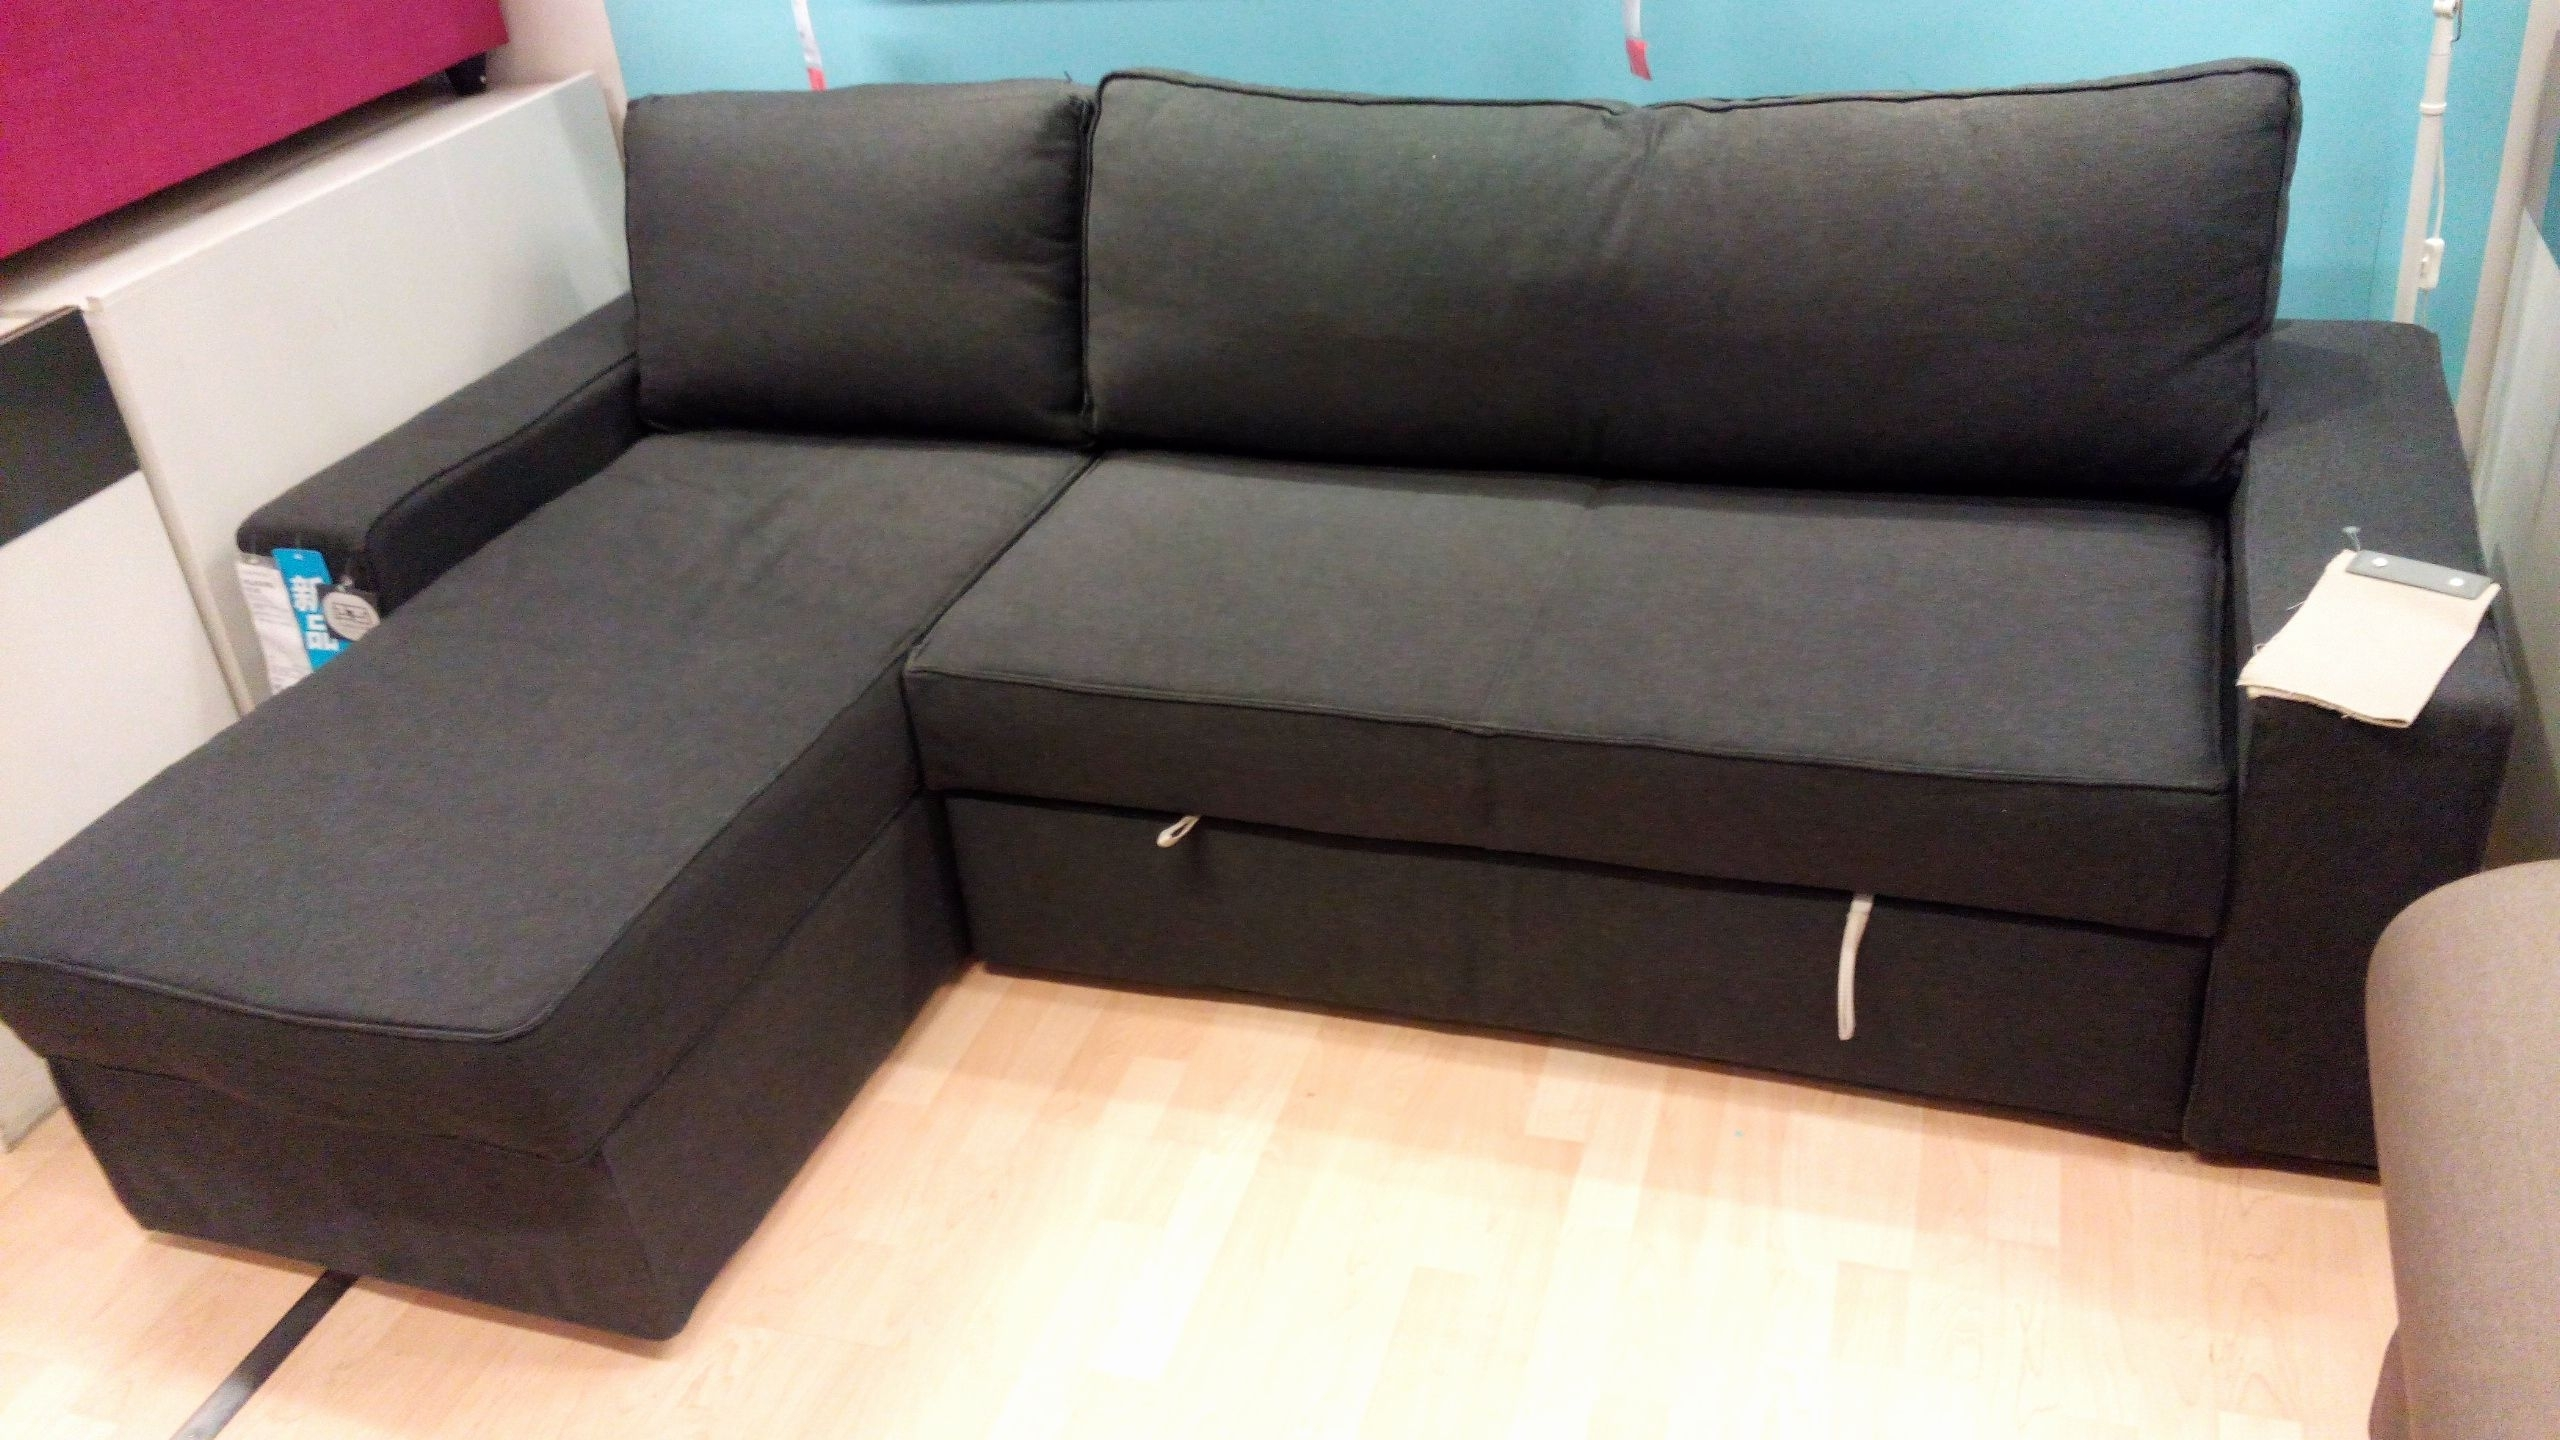 Fresh Sectional Sofa Bed With Storage Pictures Sectional Sofa Bed Intended For Manstad Sofas (Image 2 of 10)